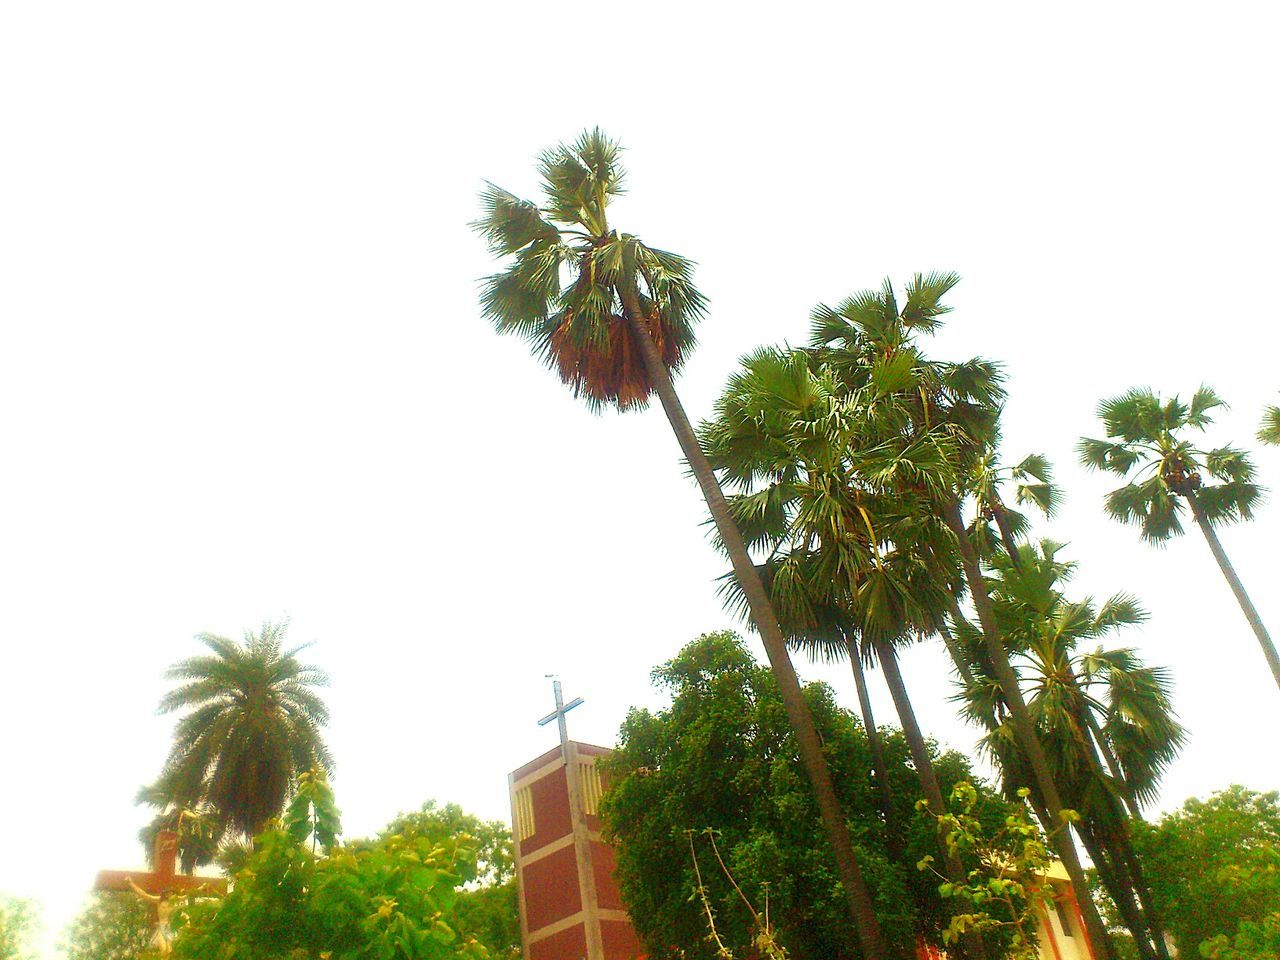 palm tree, tree, low angle view, growth, no people, palm frond, tree trunk, architecture, day, clear sky, built structure, outdoors, building exterior, sky, nature